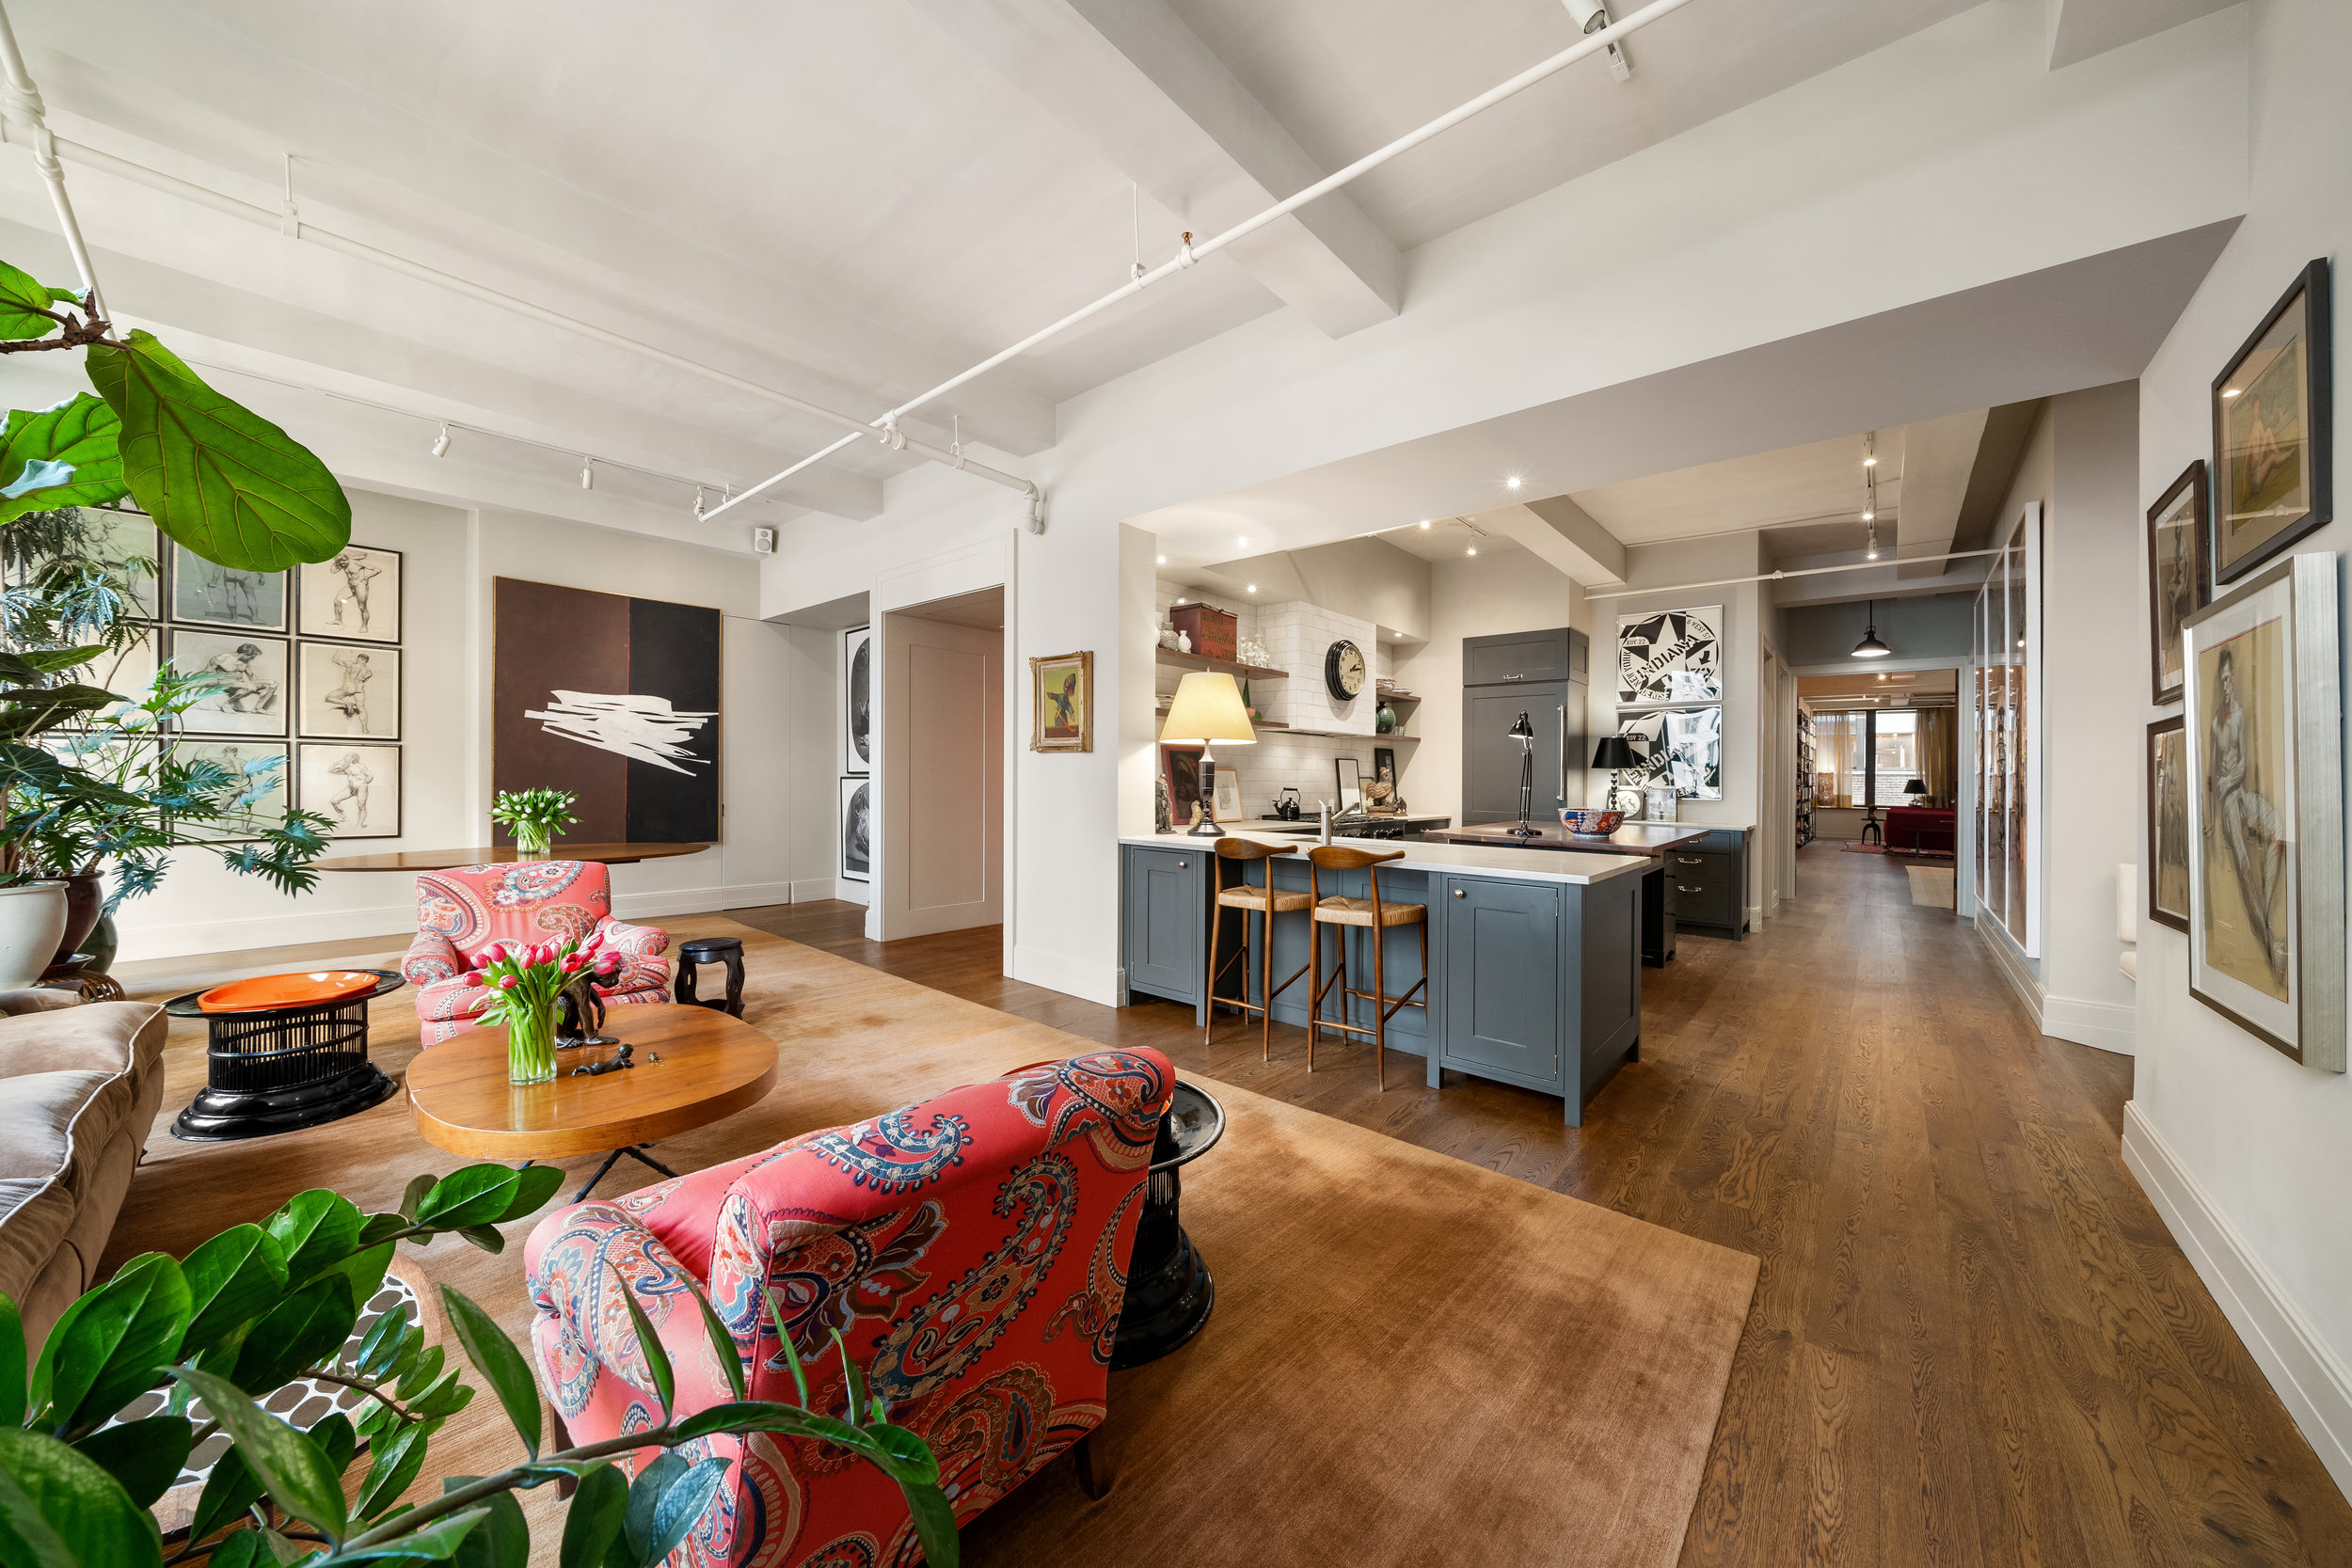 142West26thStreet9-ChelseaNewYork_Holly_Parker_DouglasElliman_Photography_79379400_high_res.jpg